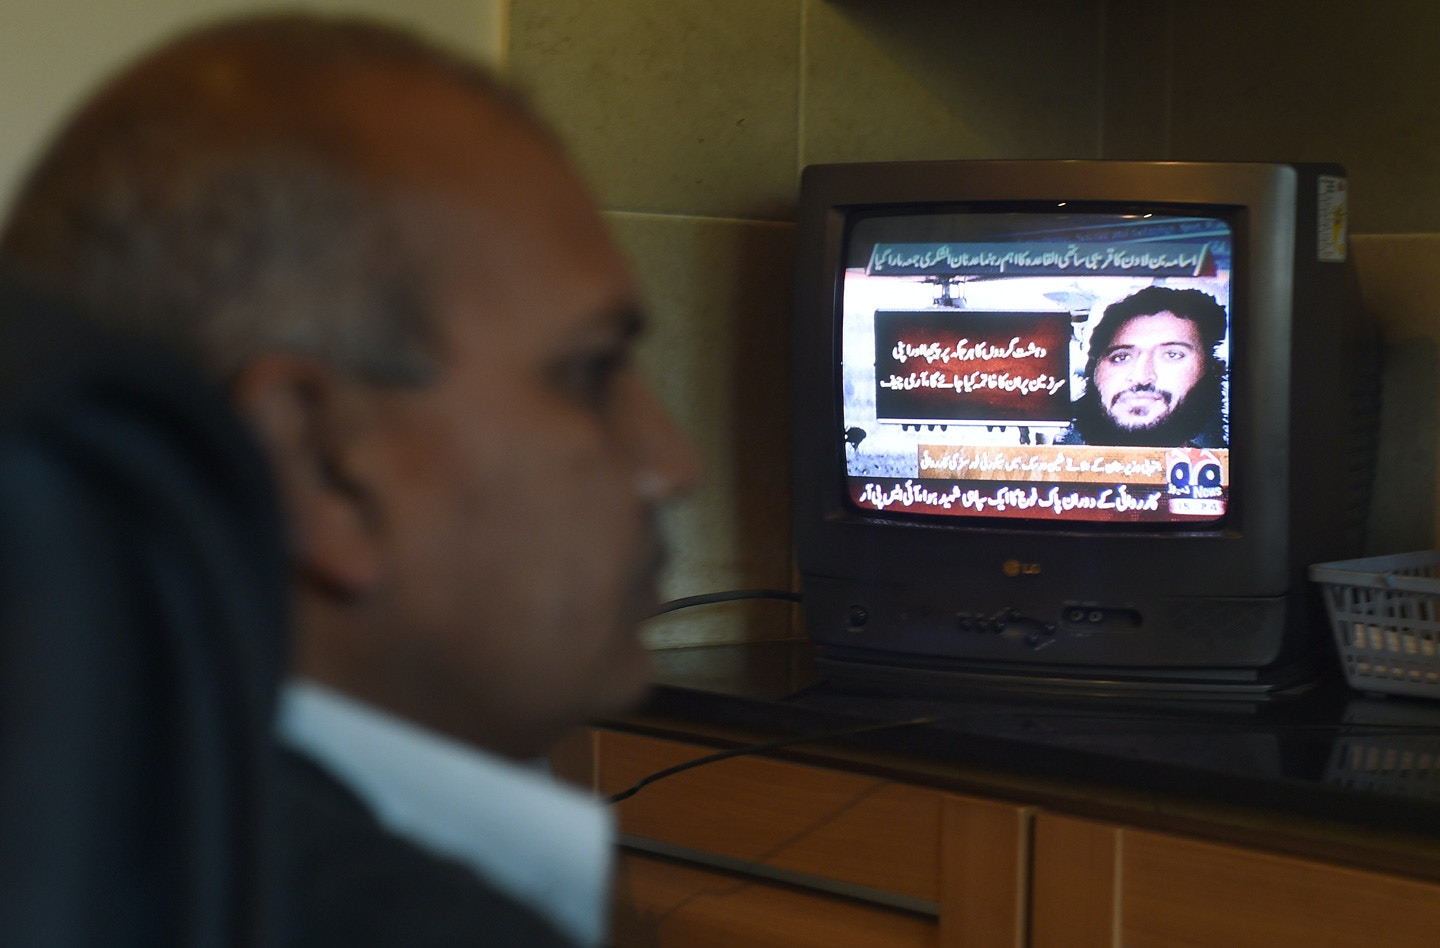 A Pakistani man watches a television broadcasting news of top Al-Qaeda leader Adnan El Shukrijumah, in Islamabad on December 6, 2014.  Pakistan's military said it had killed Shukrijumah, a senior Al-Qaeda leader wanted by the US over a 2009 plot to attack the New York subway system. Shukrijumah, one of the FBI's most wanted terrorists, was hiding in a compound in Shinwarsak, northwestern Pakistan, after fleeing from neighbouring North Waziristan tribal district where the army launched a major operation against militant bases in June, the military said.  AFP PHOTO/Farooq NAEEM        (Photo credit should read FAROOQ NAEEM/AFP/Getty Images)